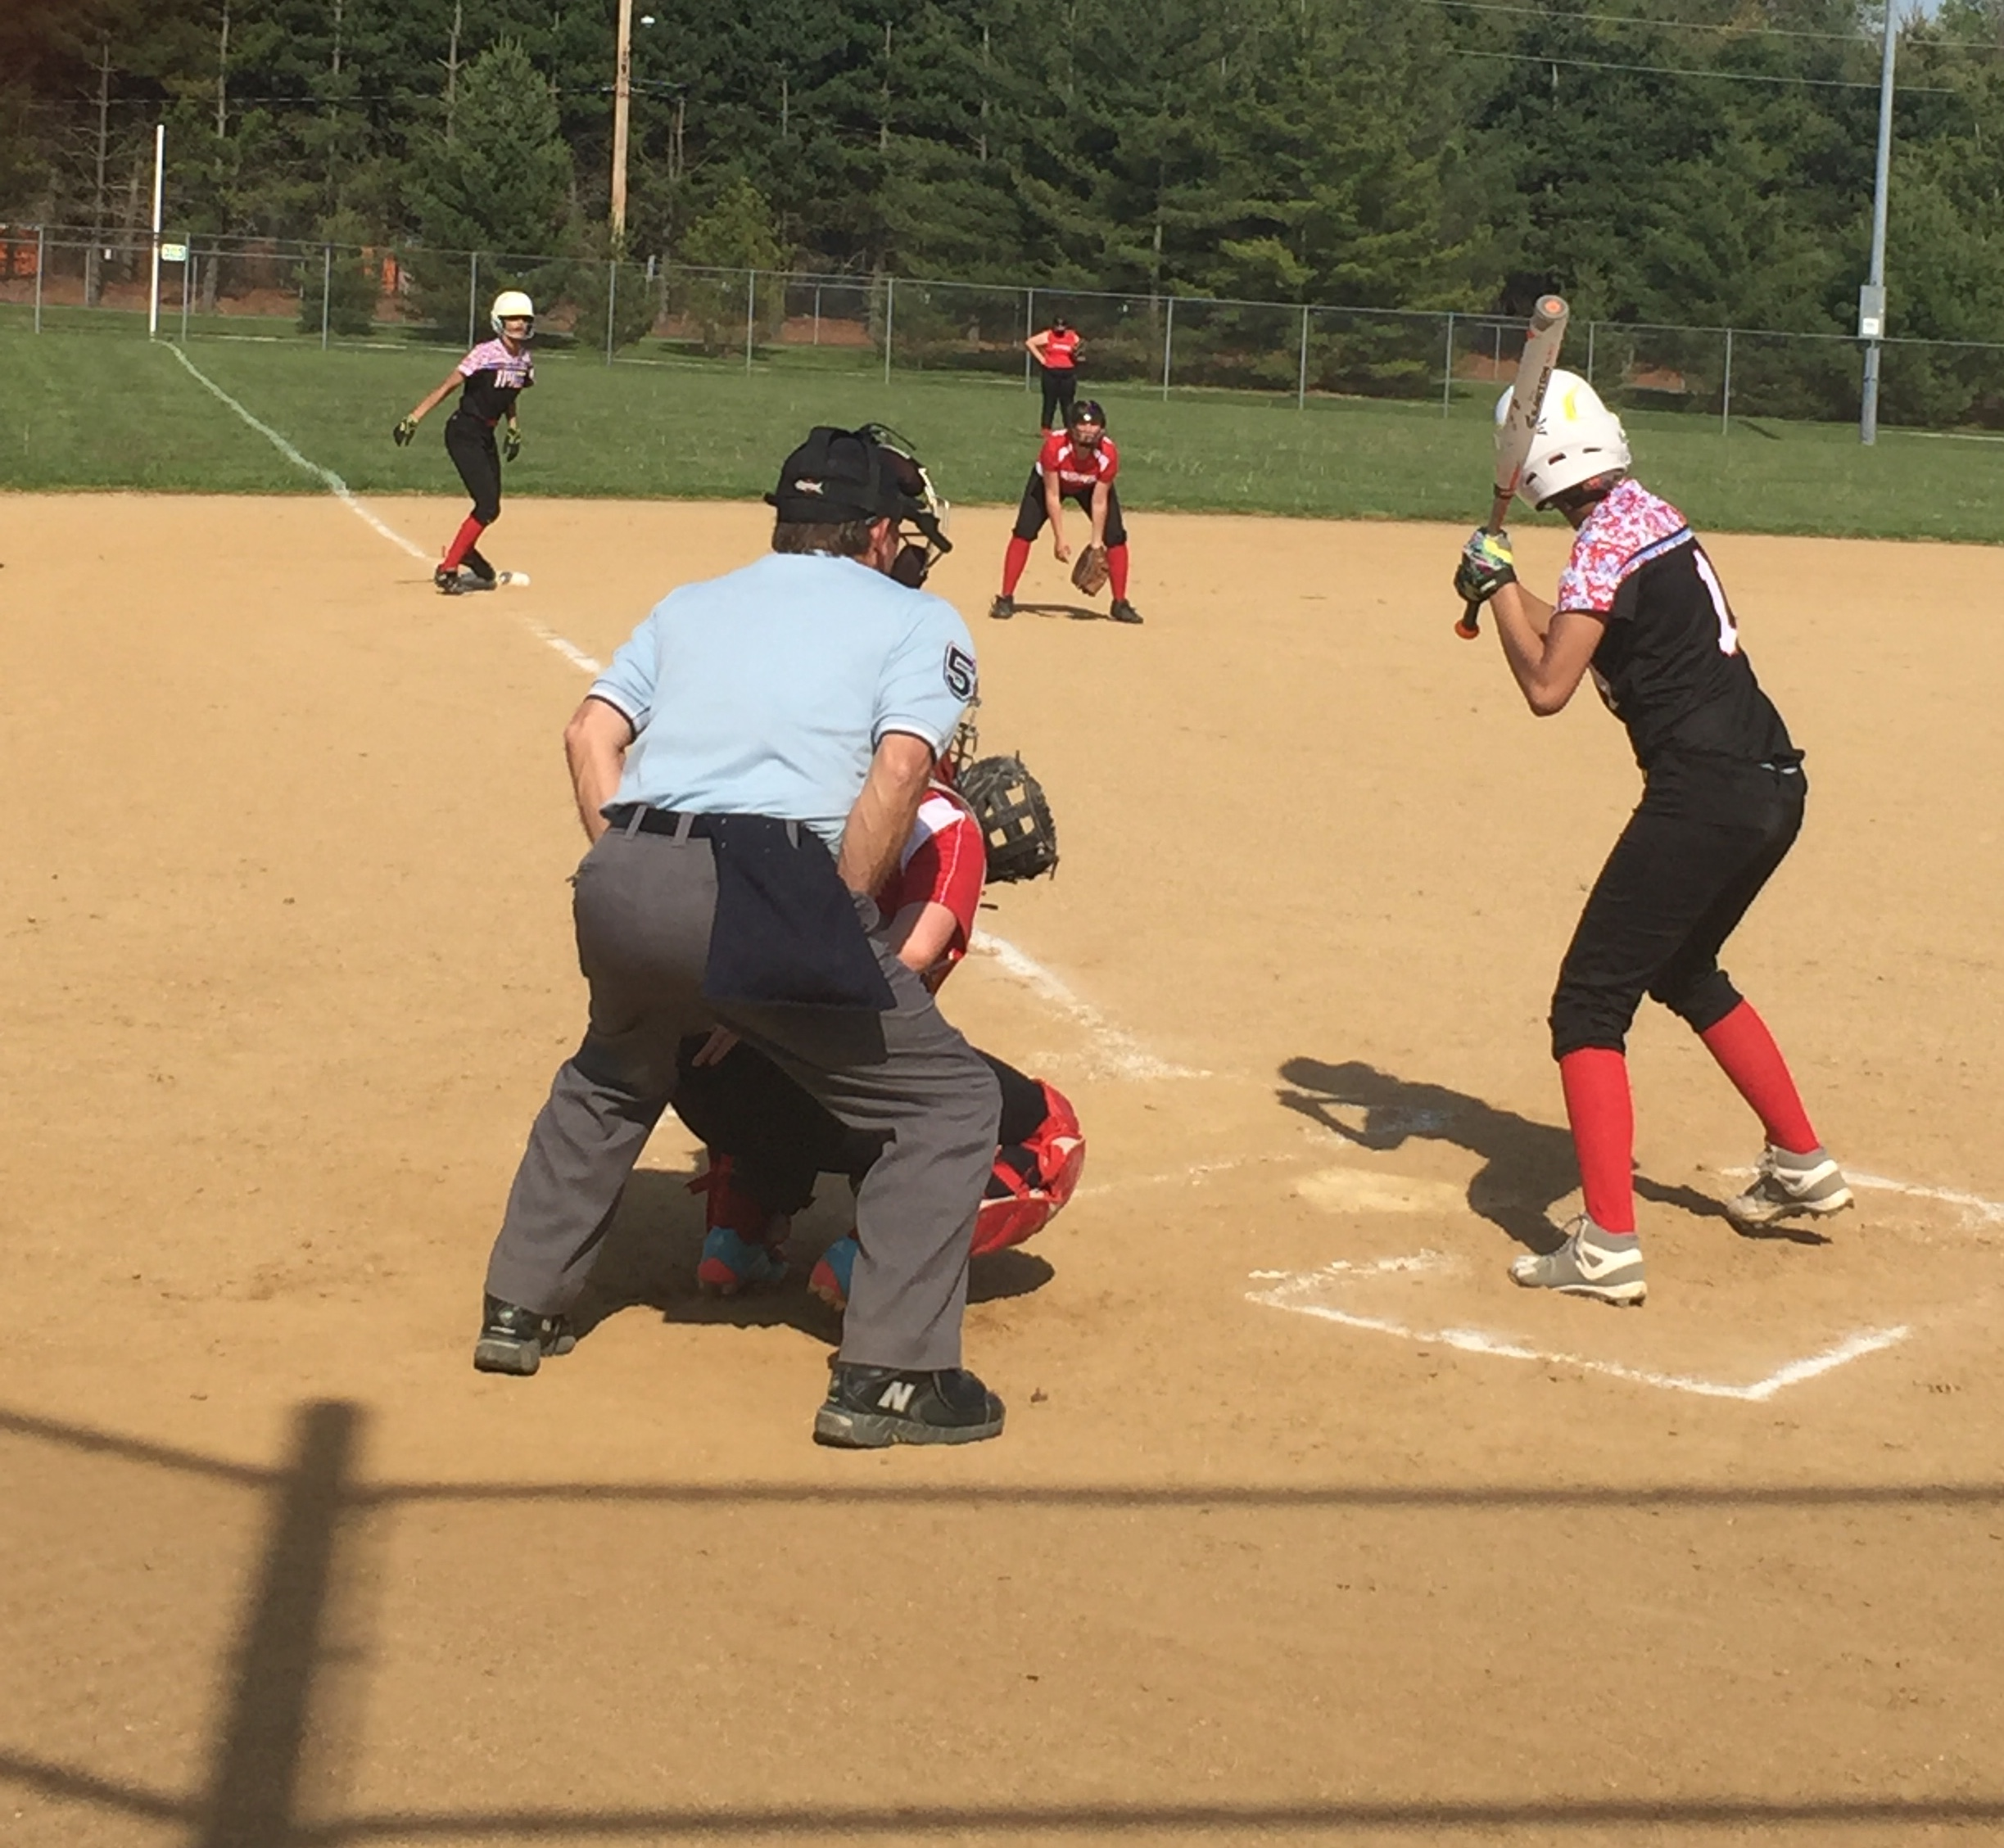 Angelica Malone at bat, trying to bring her older sister Christiana (on third base) home during a softball game last spring.